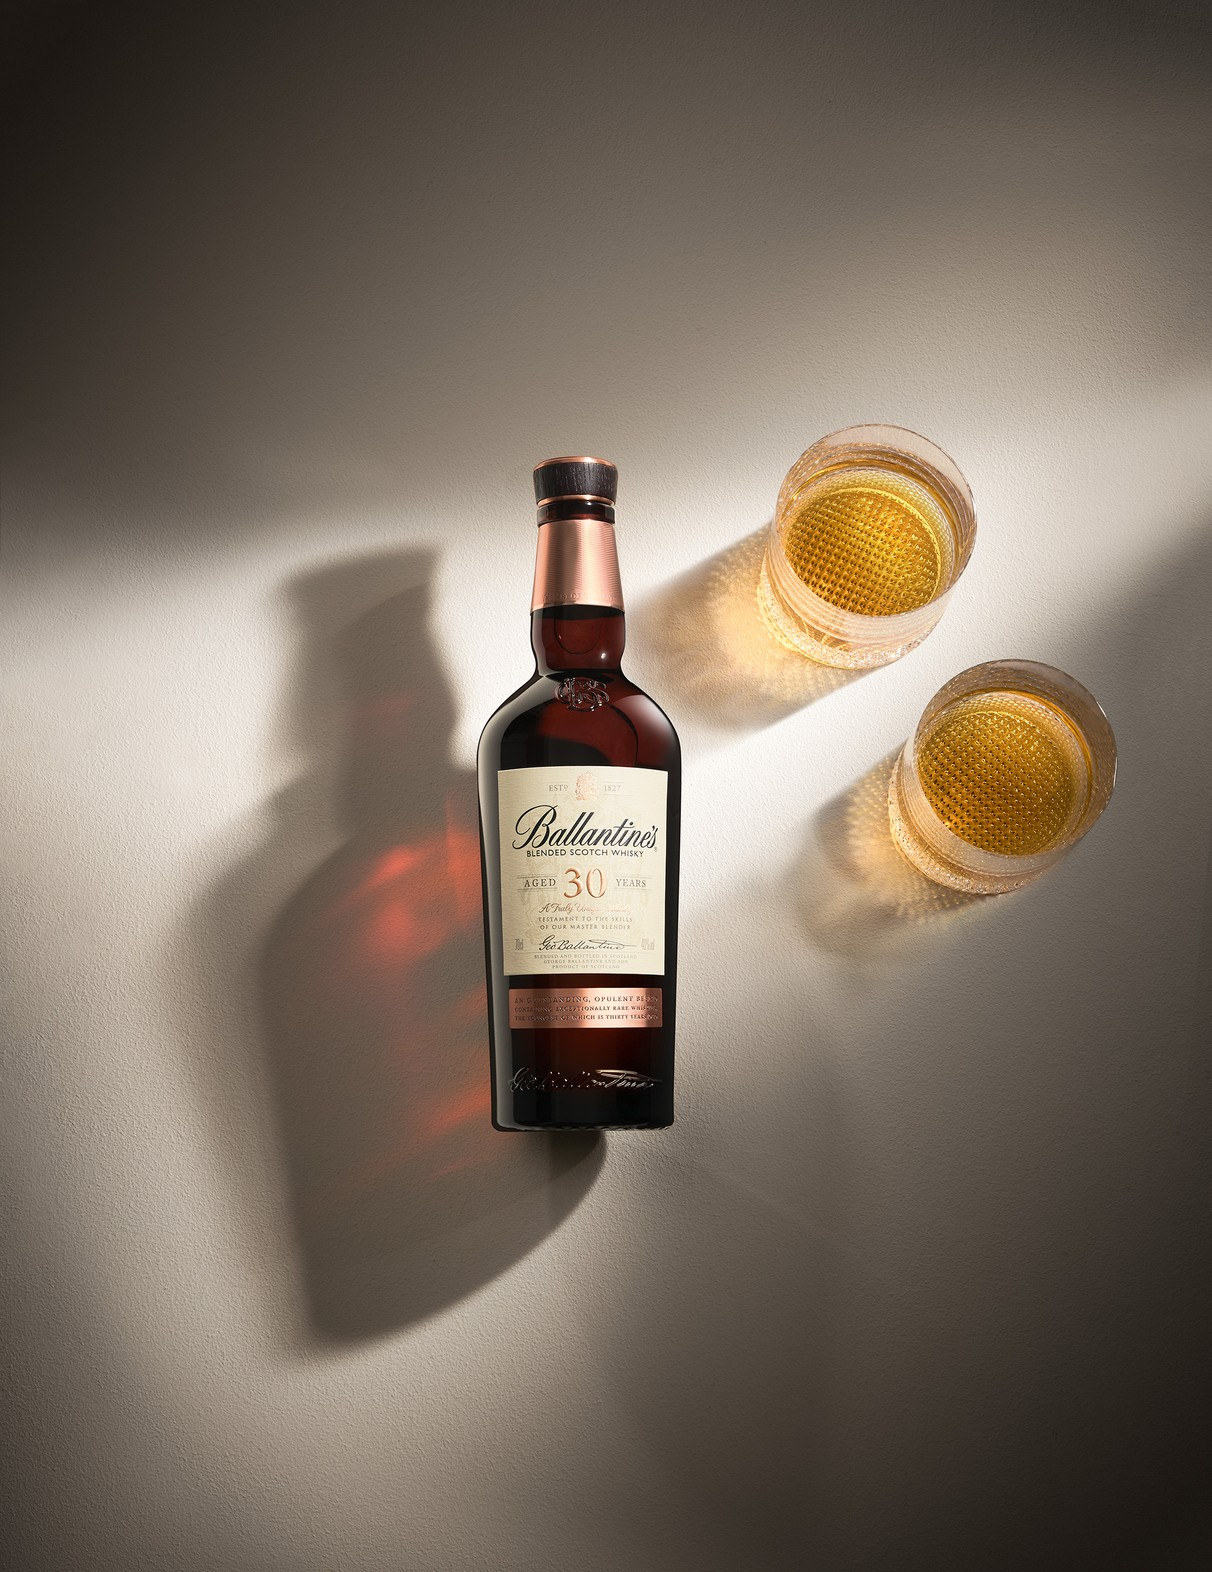 ballantines-30-year-old